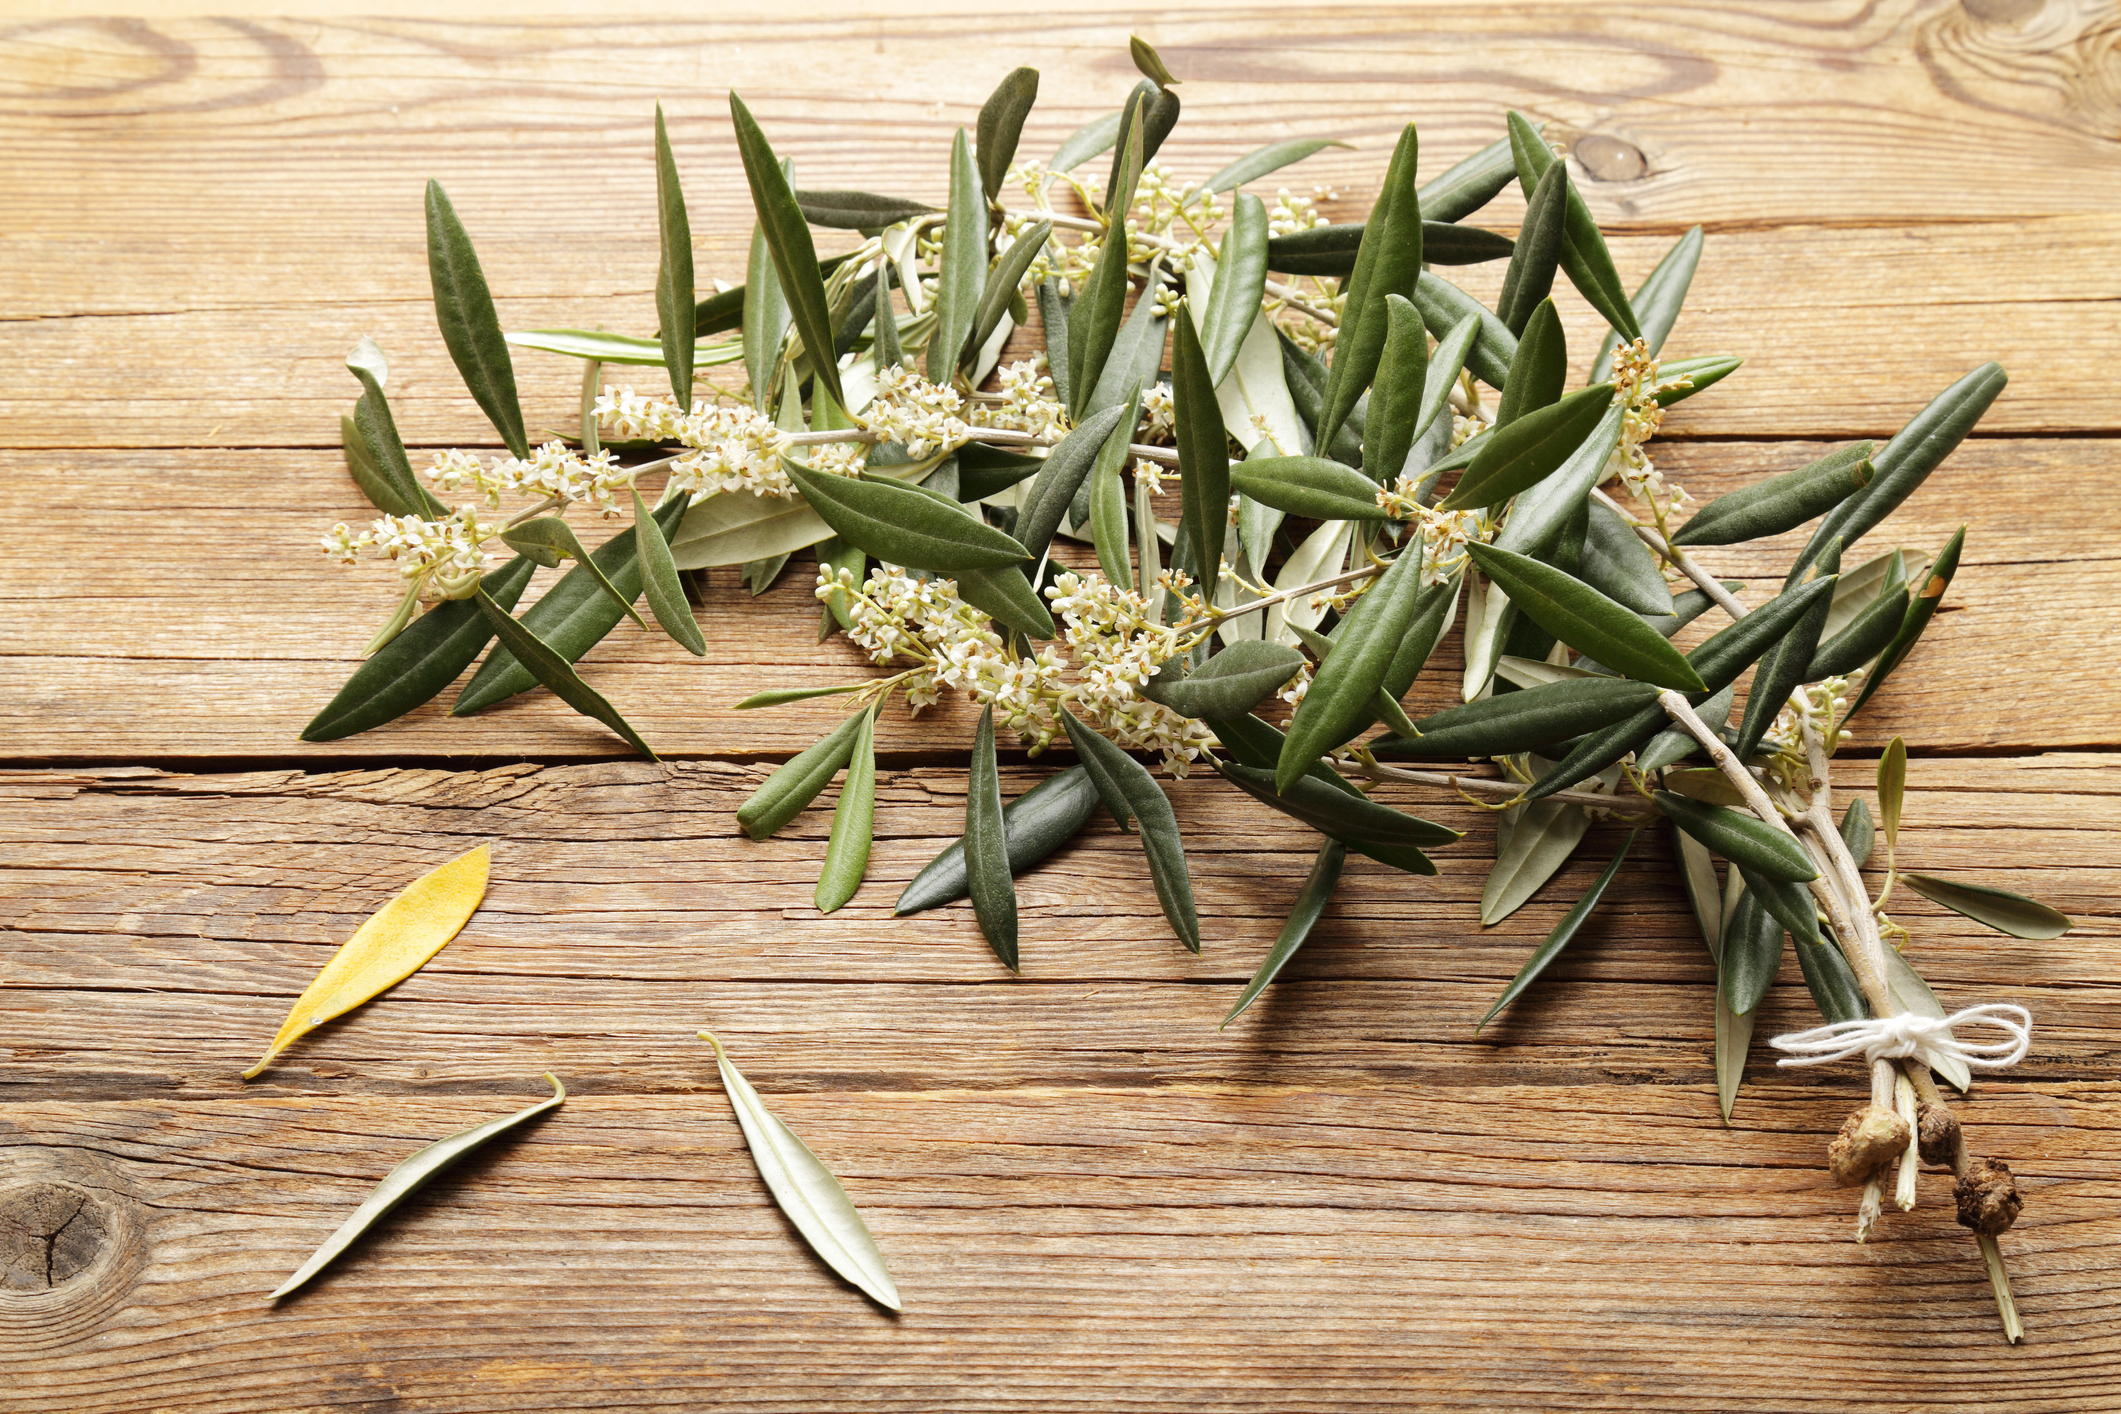 10 Herbs for Lung Support